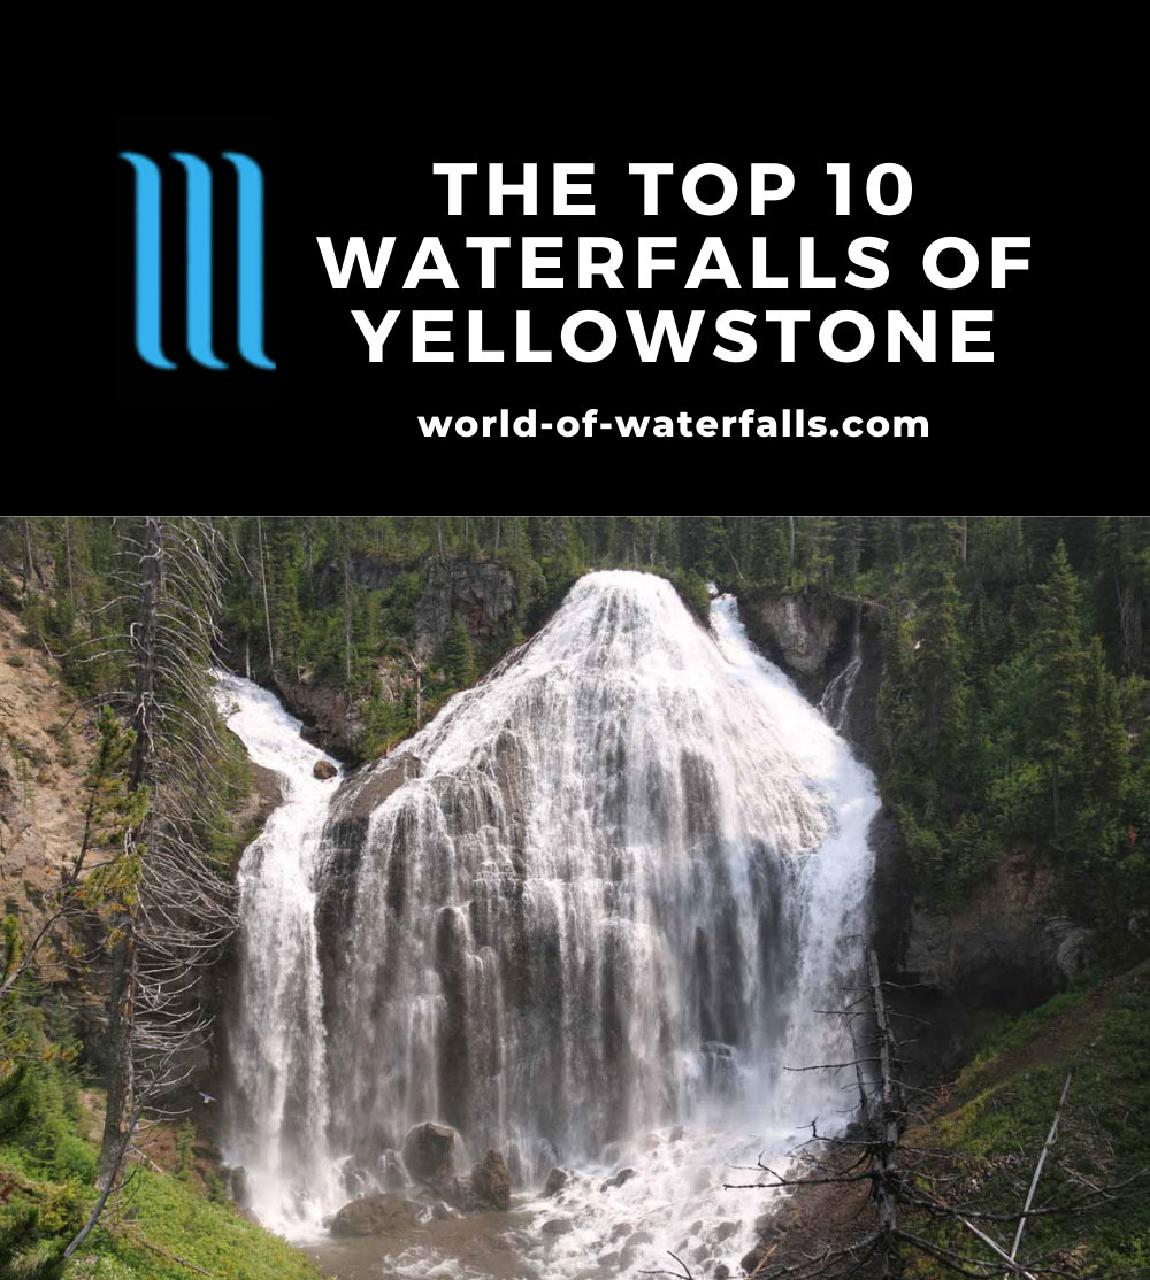 The Top 10 Waterfalls of Yellowstone National Park